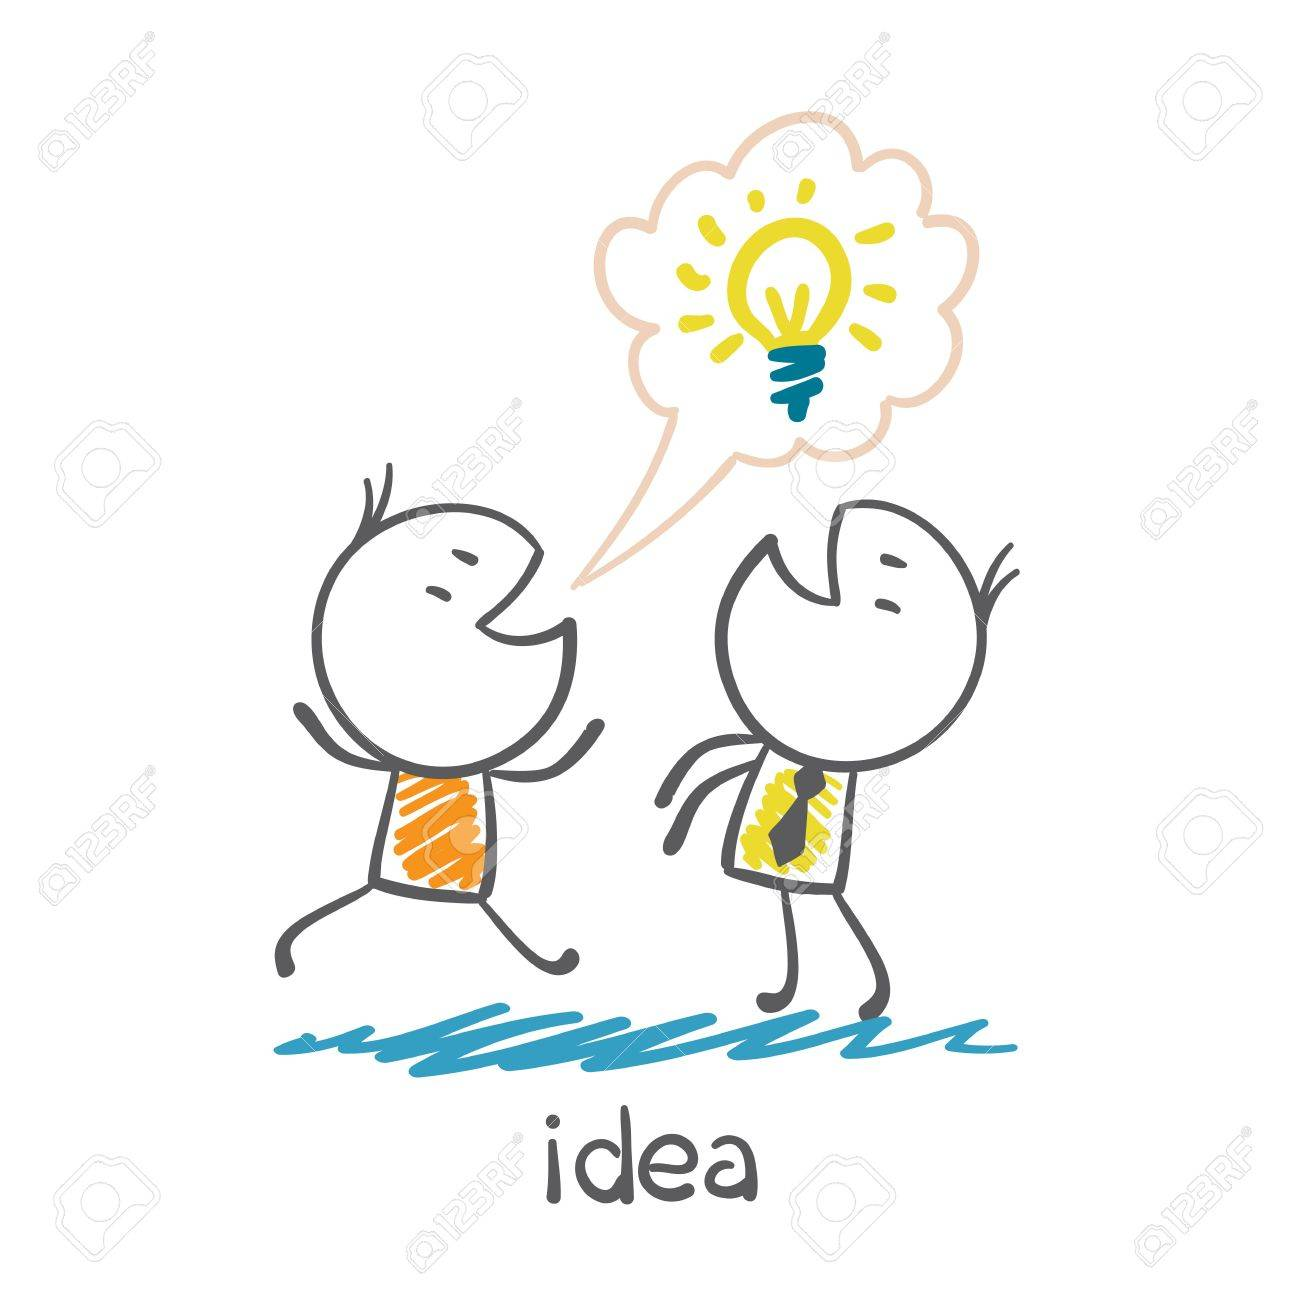 Man With Idea Bulb Runs To Tell The Other Person Illustration Stock Vector